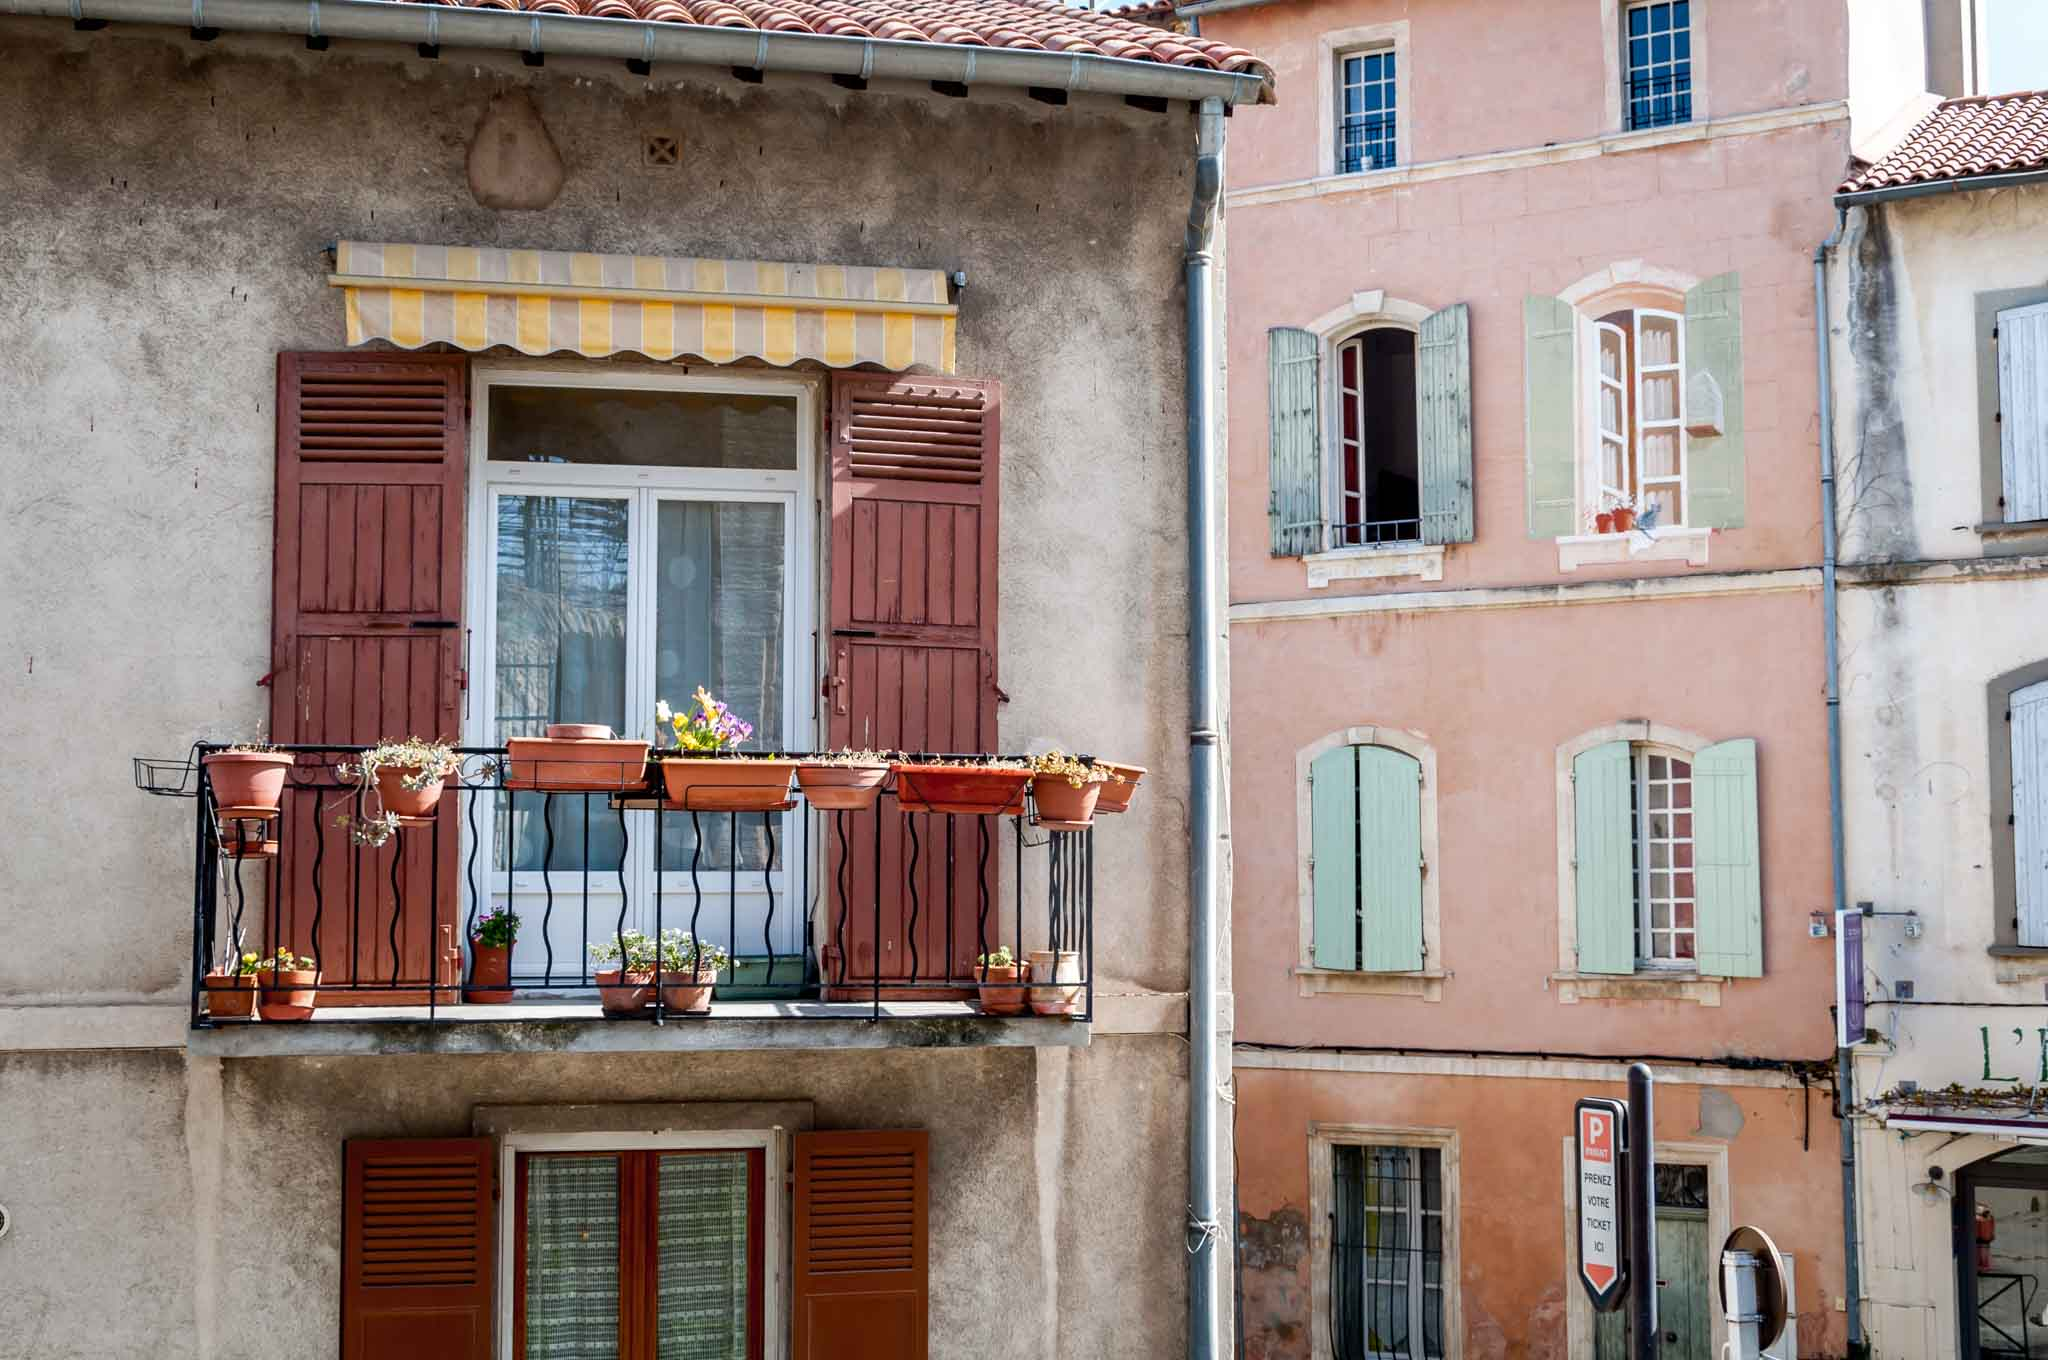 A 10-day South of France itinerary takes you through historic towns, lush vineyards, local markets, and more